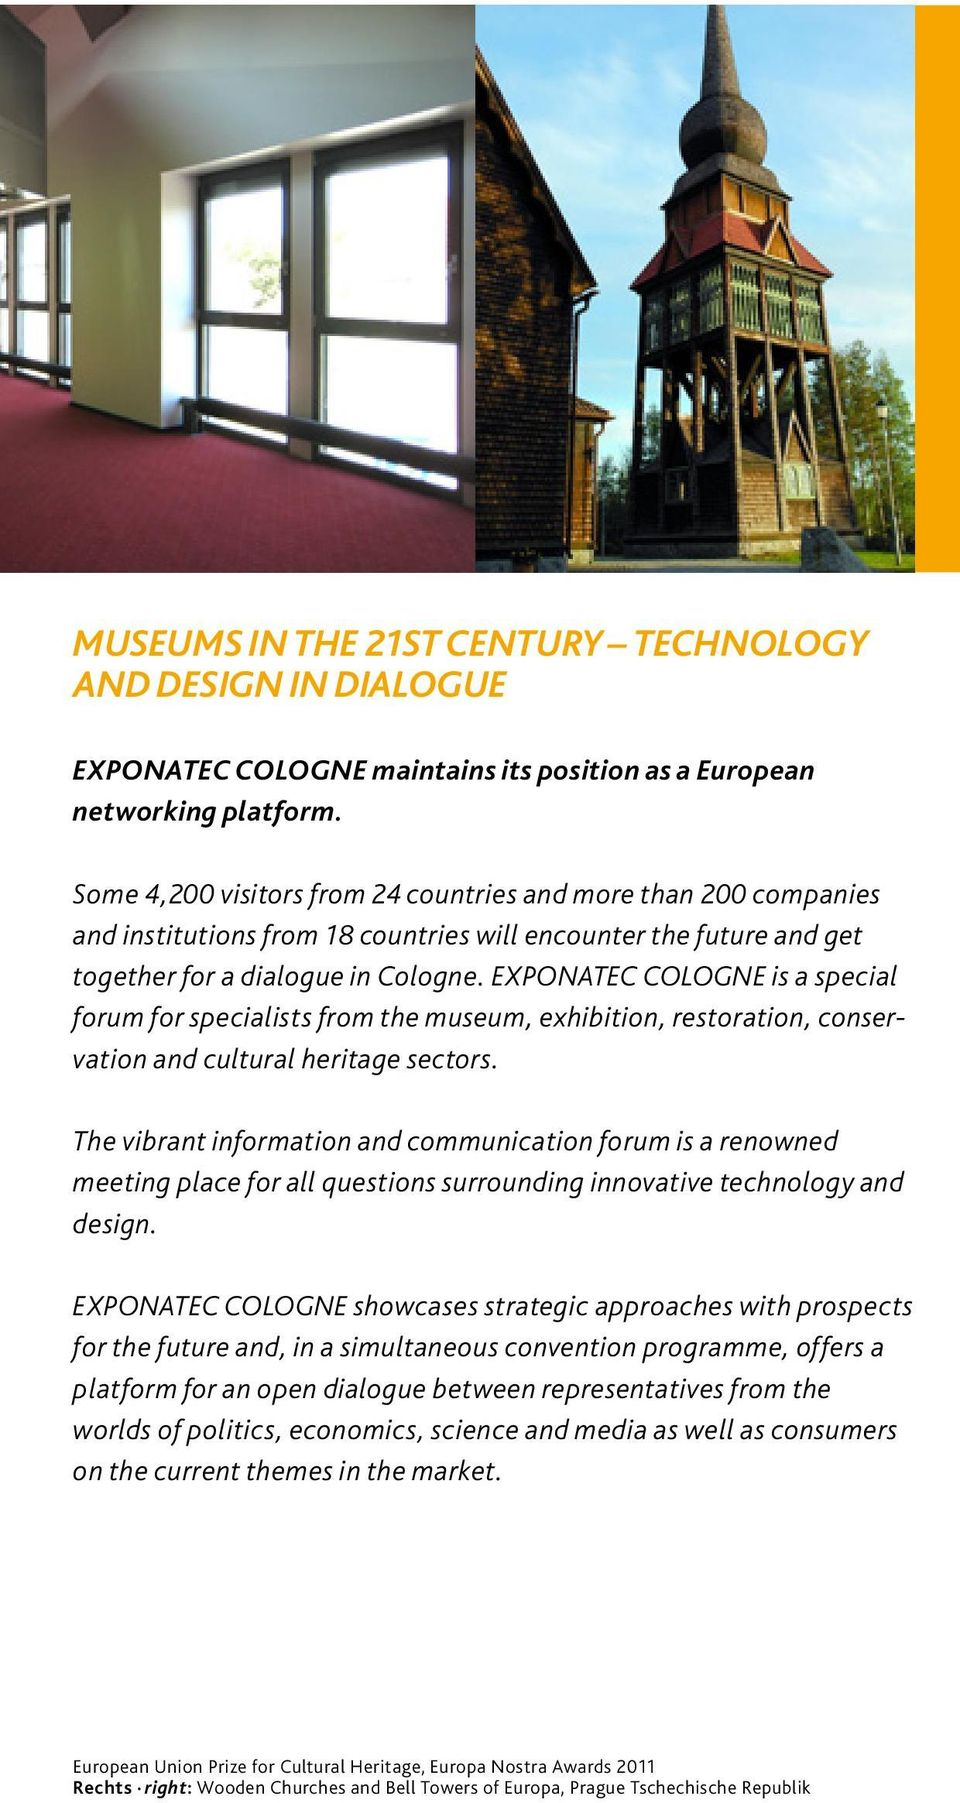 EXPONATEC COLOGNE is a special forum for specialists from the museum, exhibition, restoration, conservation and cultural heritage sectors.